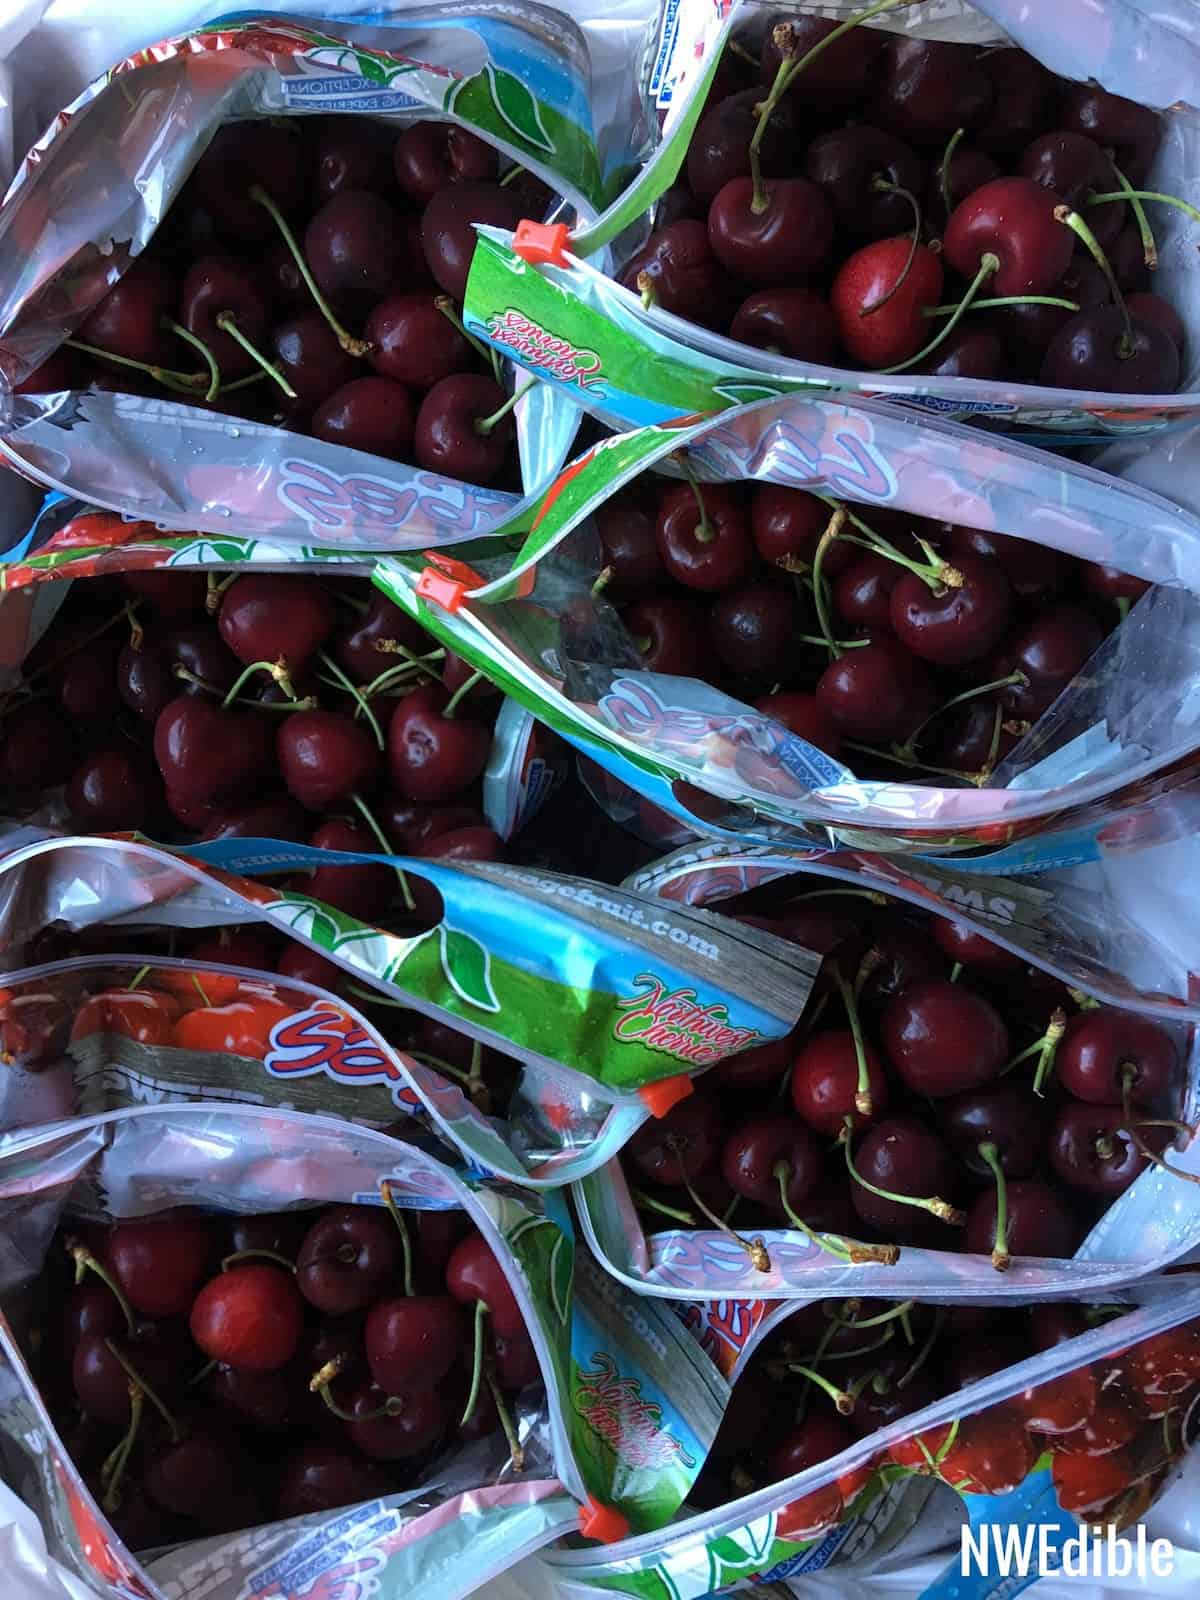 Box of cherries